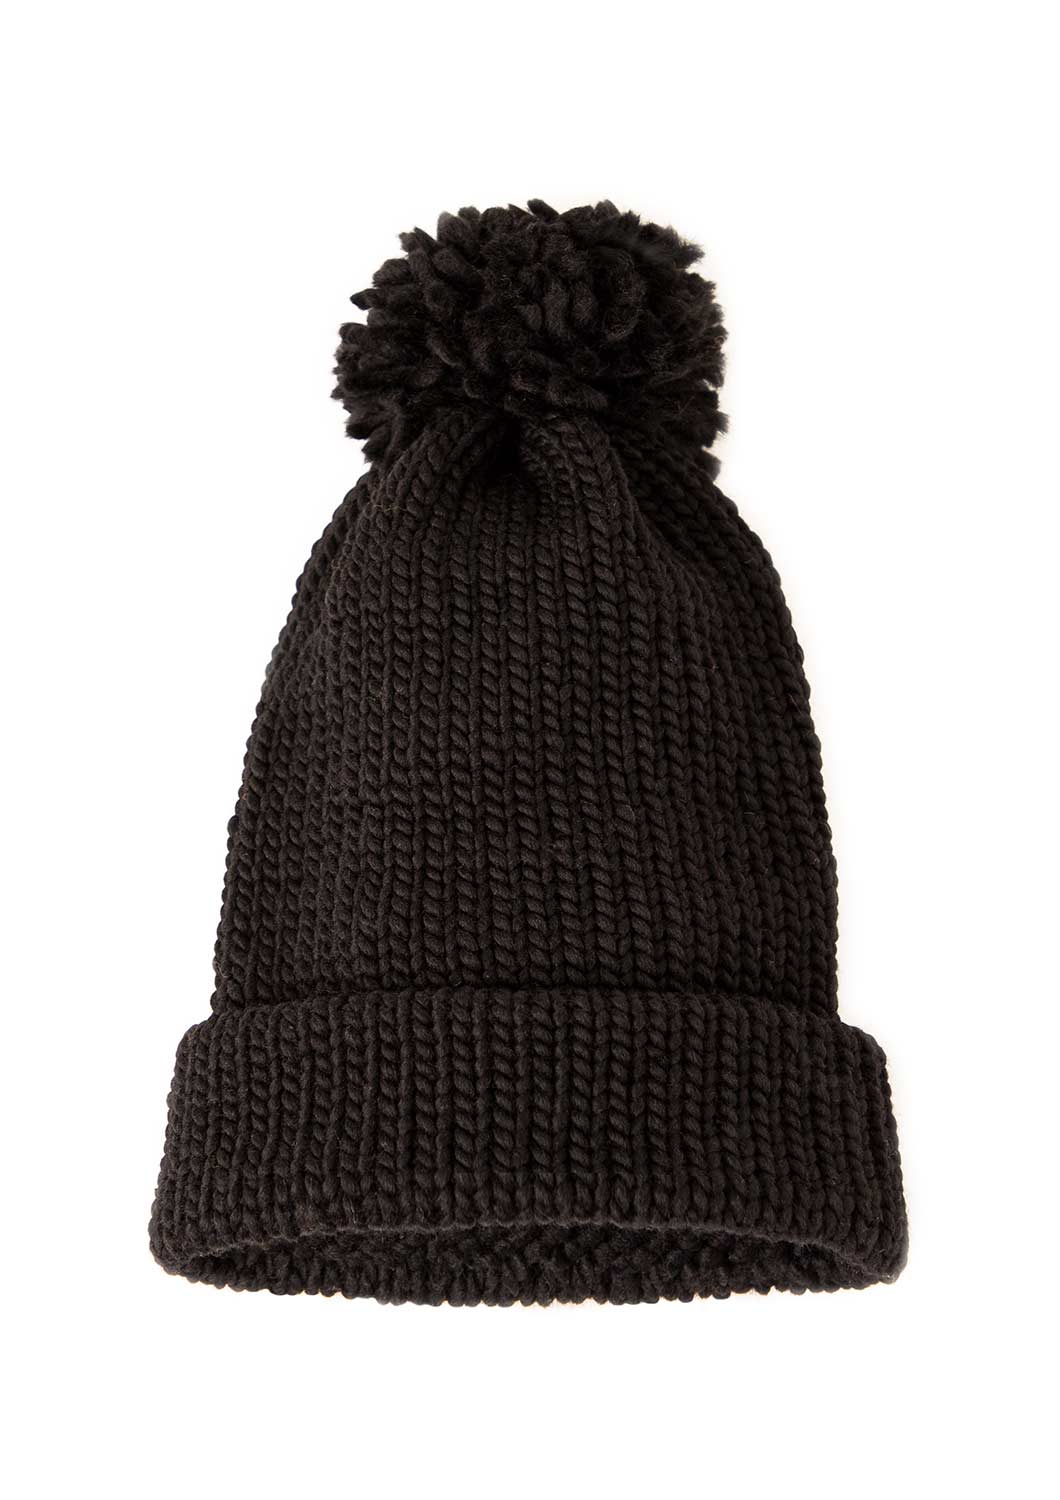 Little Badger Black Beanie - Handmade with 100% Wool